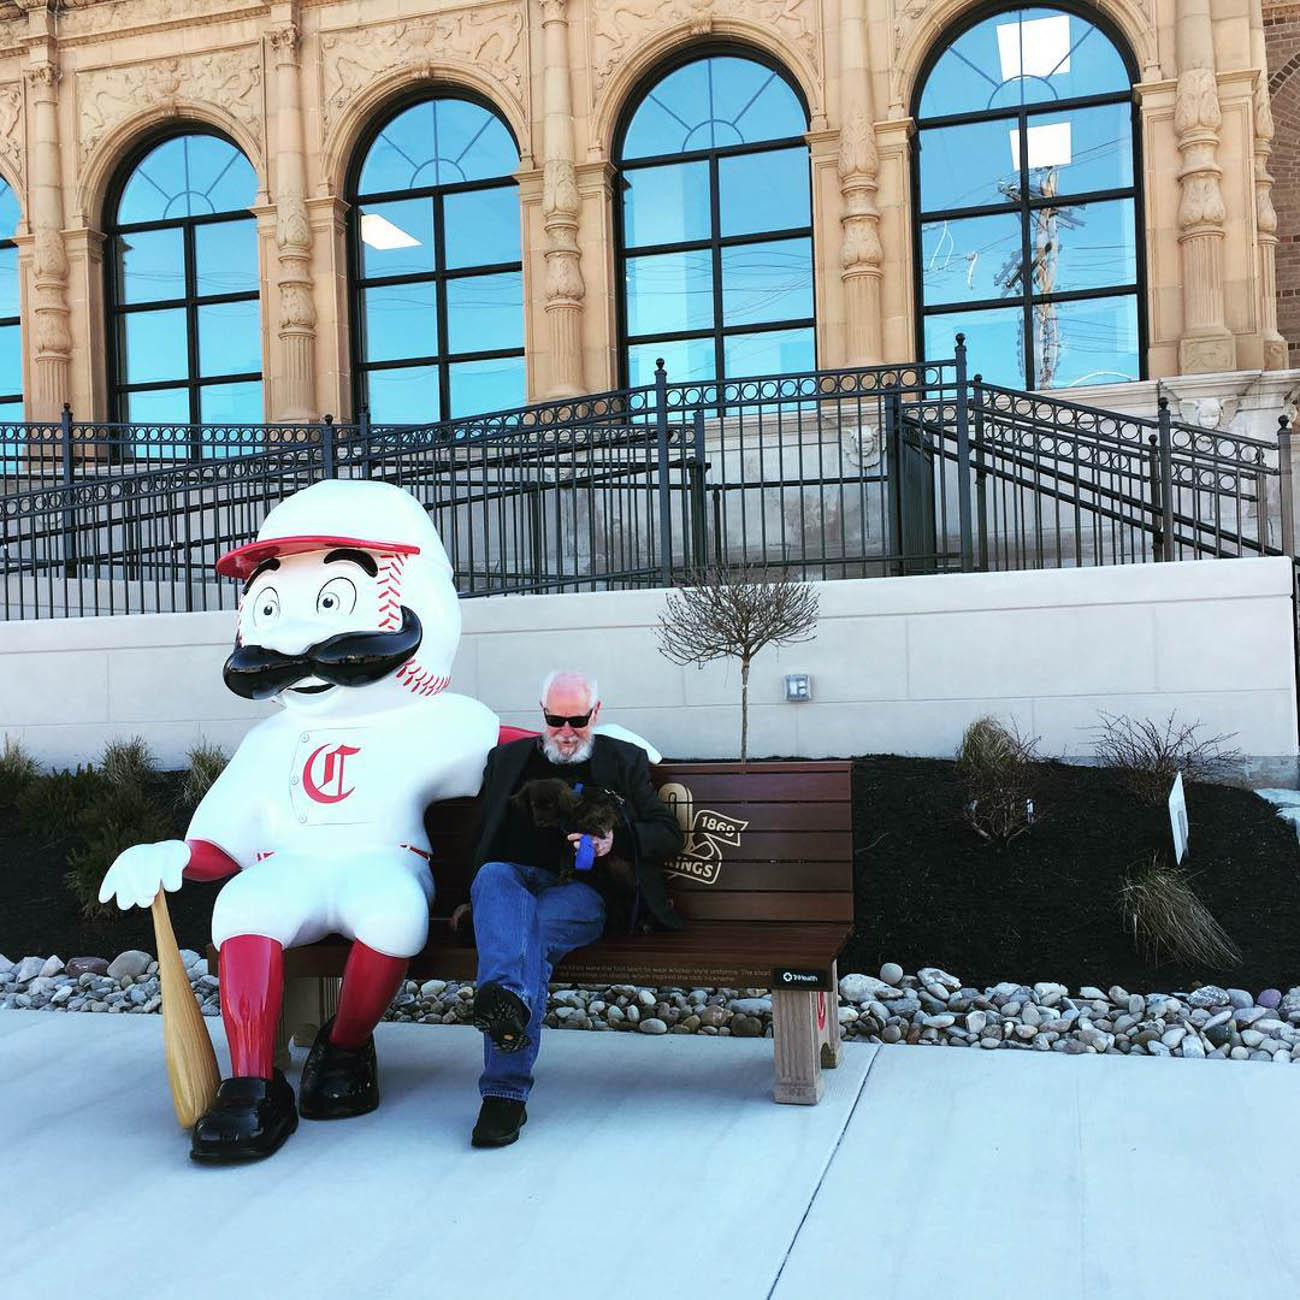 To celebrate the Reds' 150th Anniversary, 24 benches featuring Mr. Redlegs sculptures have been added to various spots around the area, as well as out of town locations including Dayton, Loveland, and Louisville, for the perfect Reds photo op. The mascot sports different uniforms from throughout the team's history at each of the benches. The Reds have been wearing these same throwback uniforms during their 2019 season. / Location: Madcap Education Center in Westwood / Uniform: 1869/ Image courtesy of Instagram user @madcapeducationcenter // Published: 5.14.19